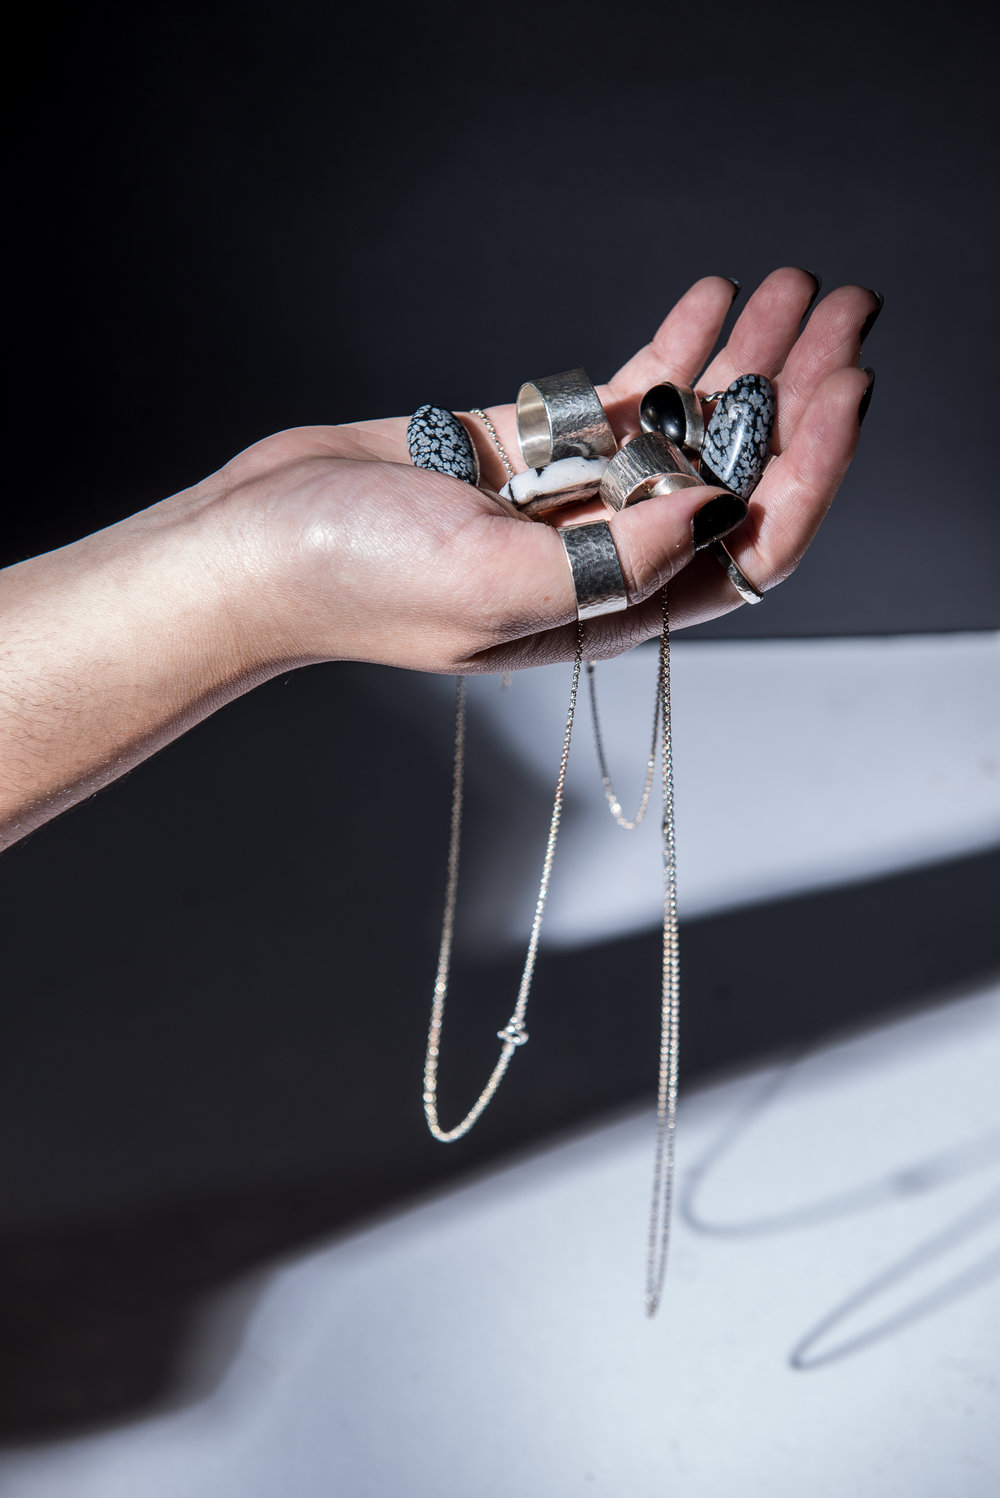 INTRODUCTION TO SILVERSMITHING - Learn the fundamentals of silversmithing and get to complete three projects in this course designed for beginners.